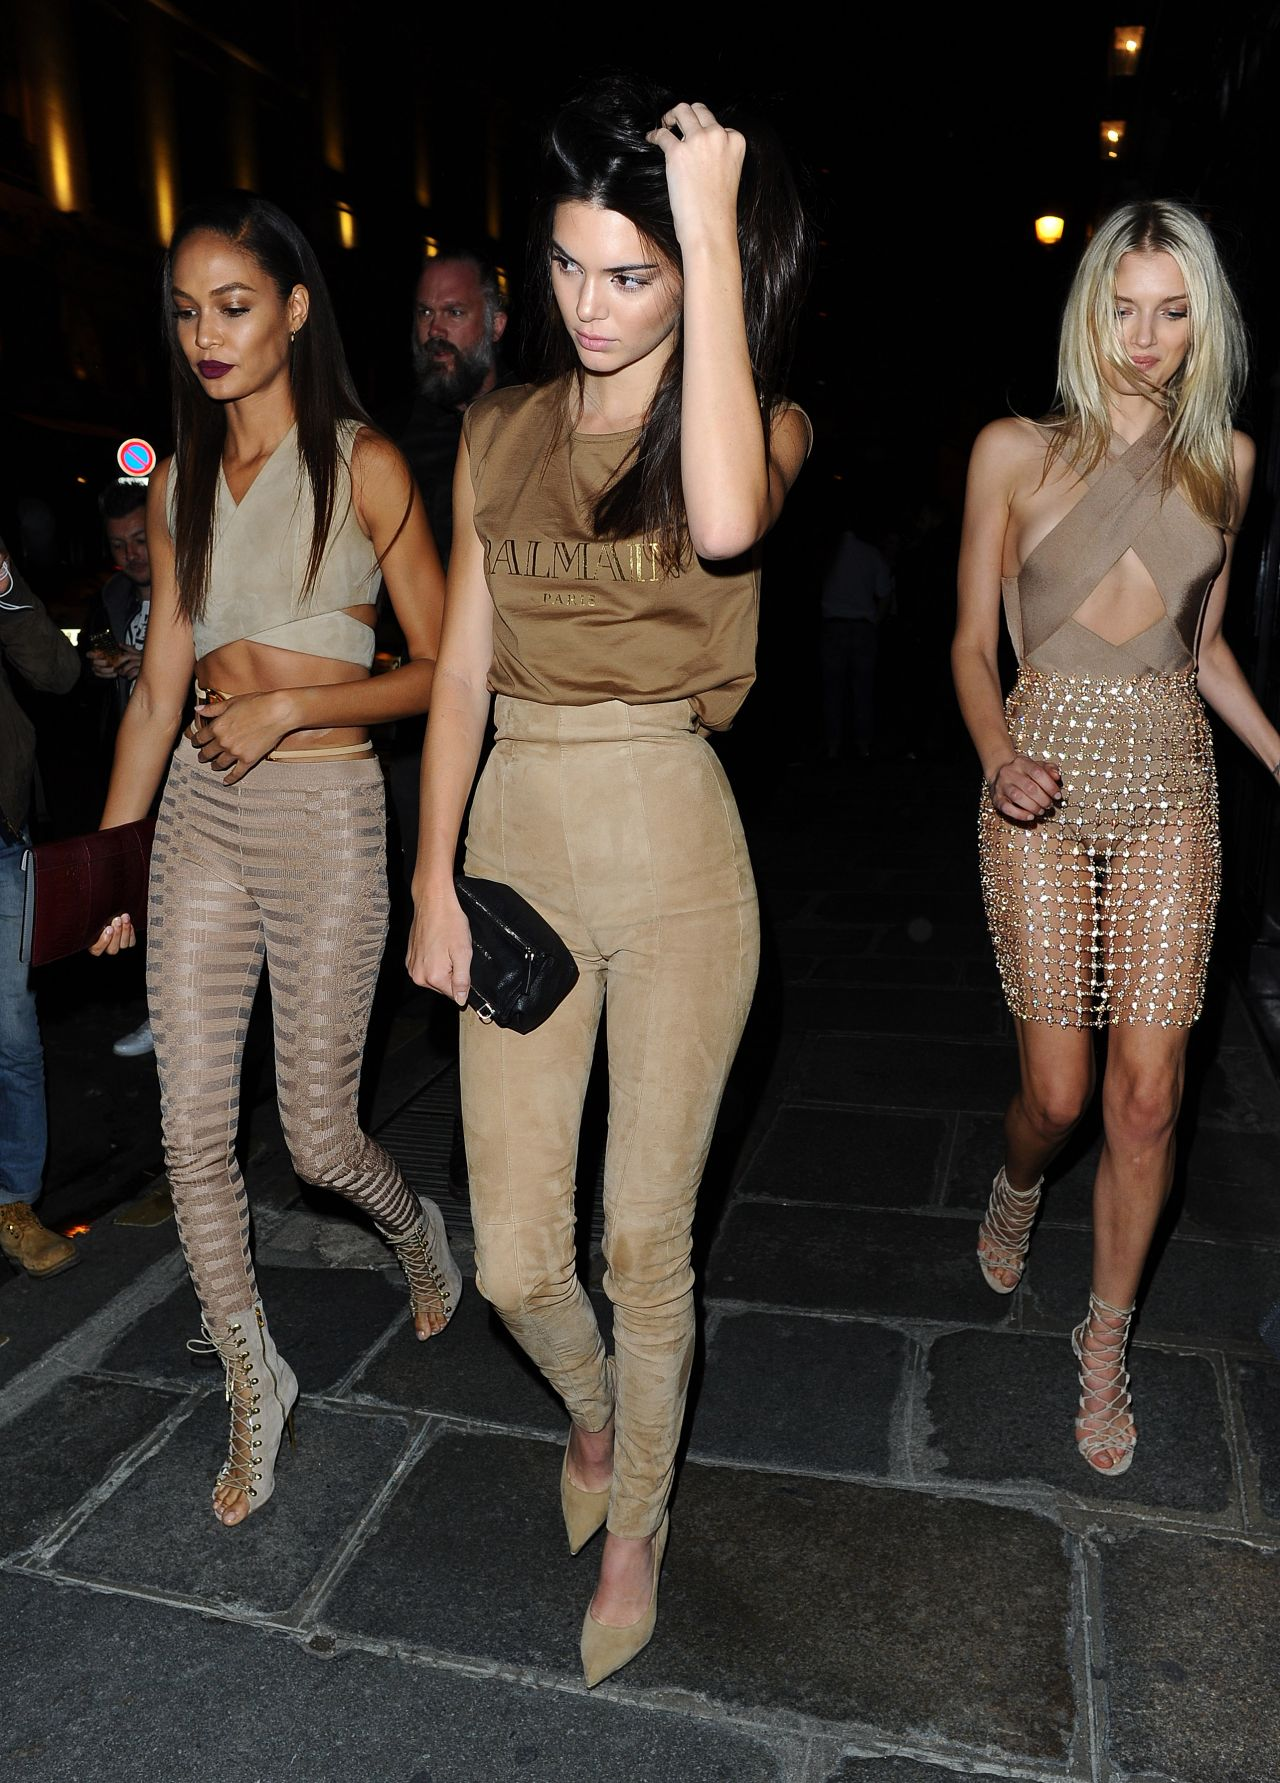 kendall-jenner-lily-donaldson-joan-smalls-leaving-costes-bar-in-paris-october-2015_2